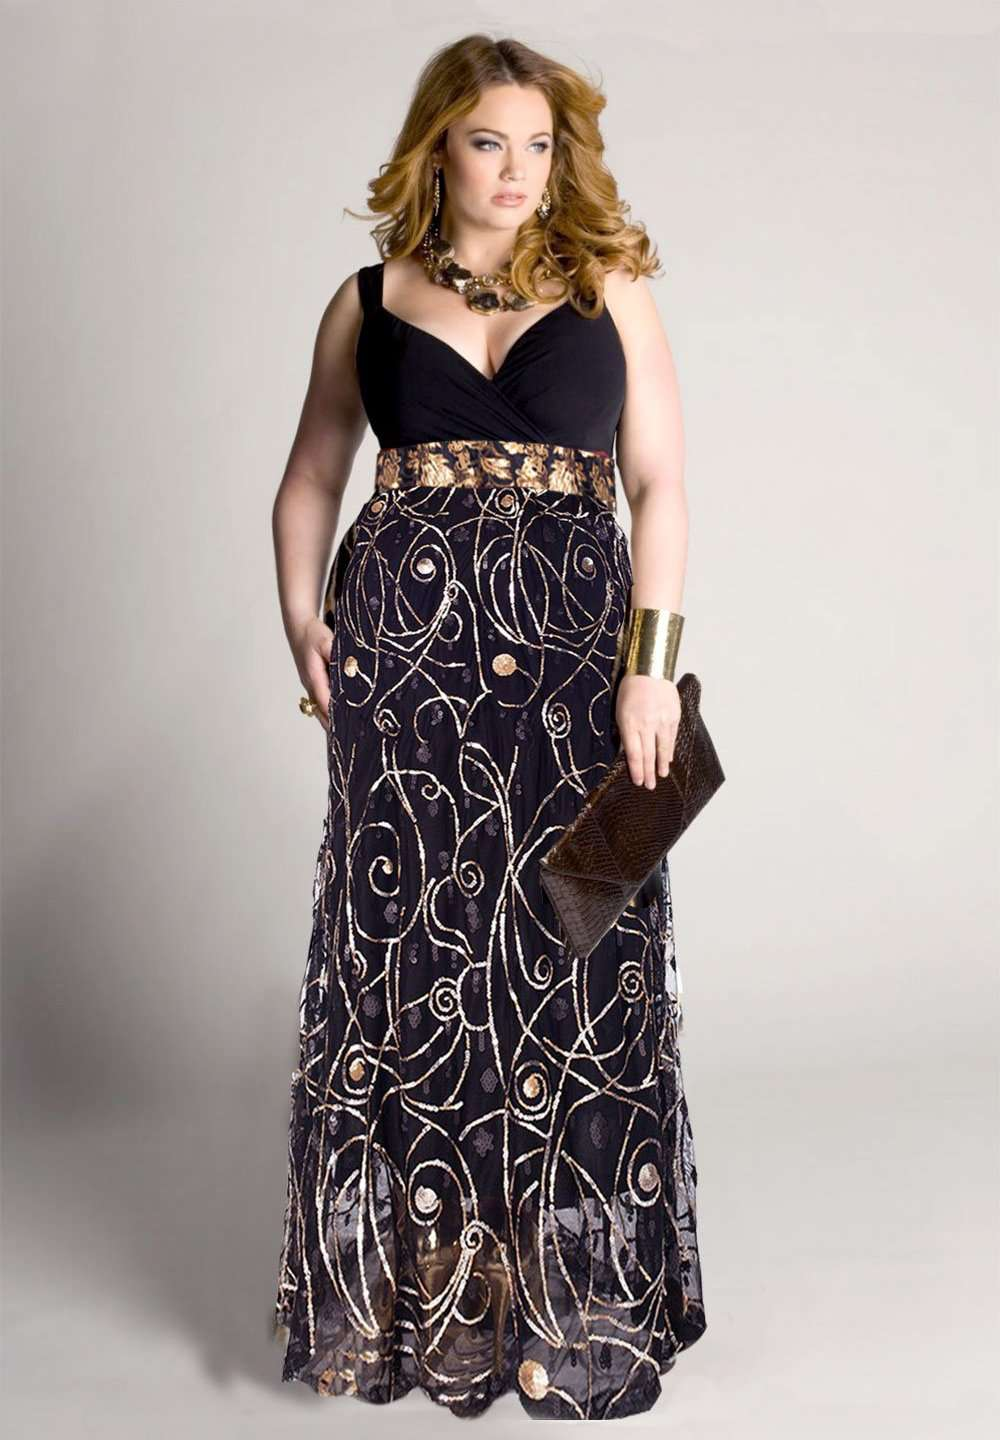 Alexandra Plus Size Dress (Made To Order)